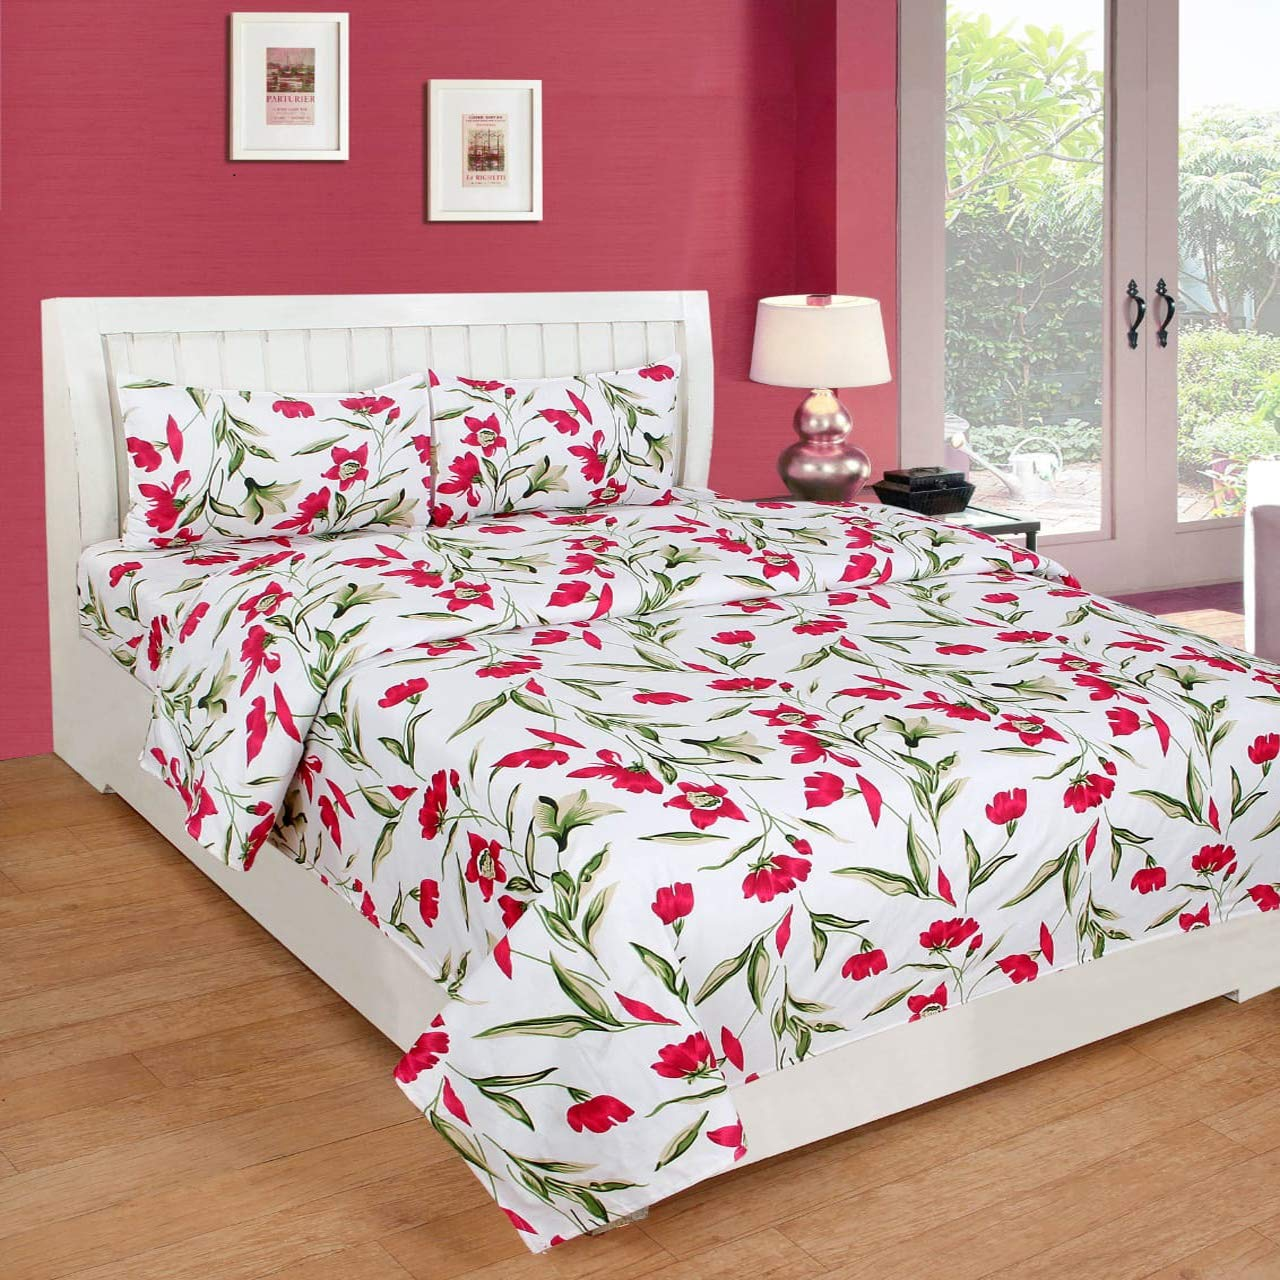 4633532fb8 Ellonia 180 TC 100% Glace Cotton Double Bed Bed-Sheet with 2 Pillow Covers  Size 90 by 90 3D Printed Multi Colour: Amazon.in: Home & Kitchen